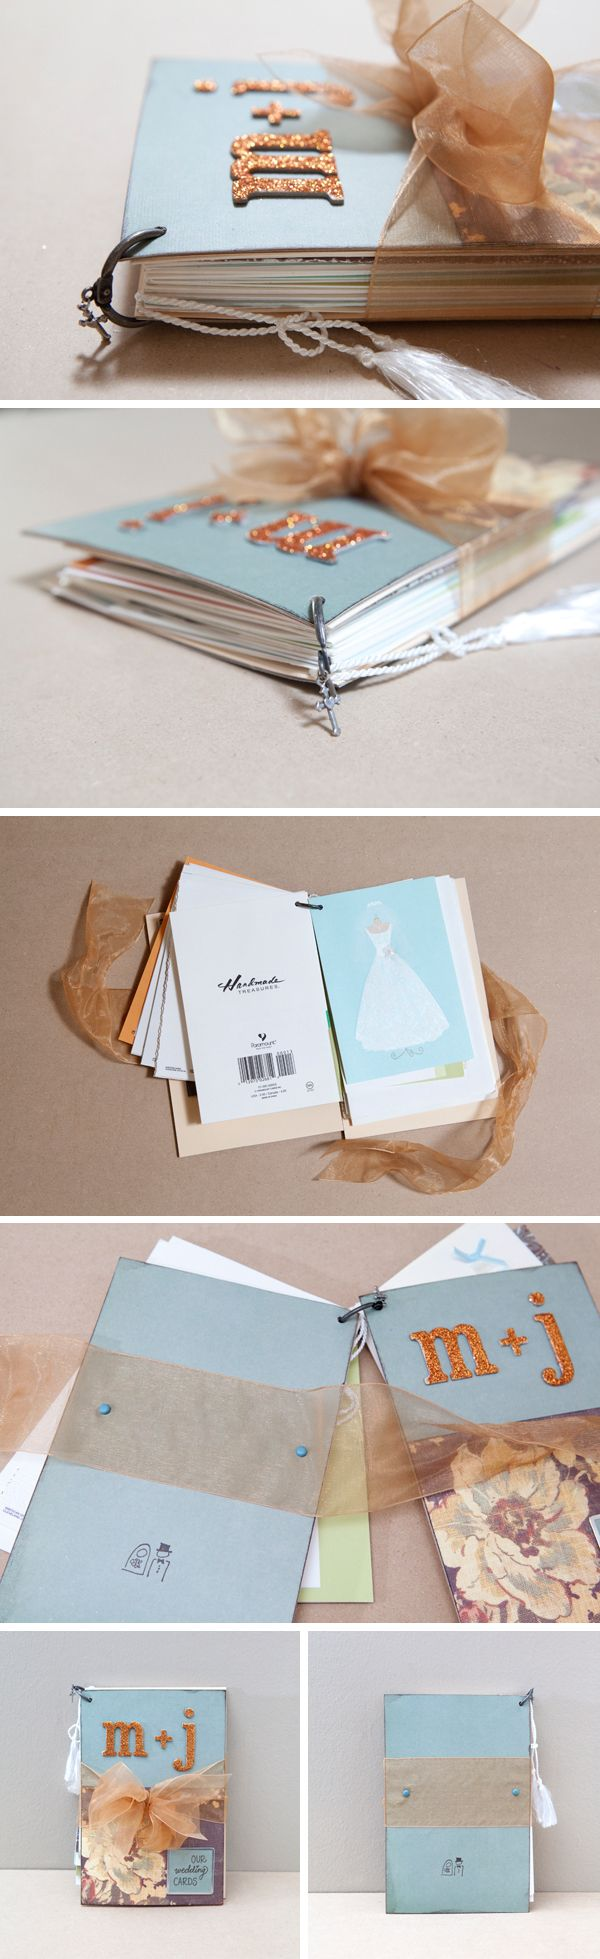 wedding cards idea